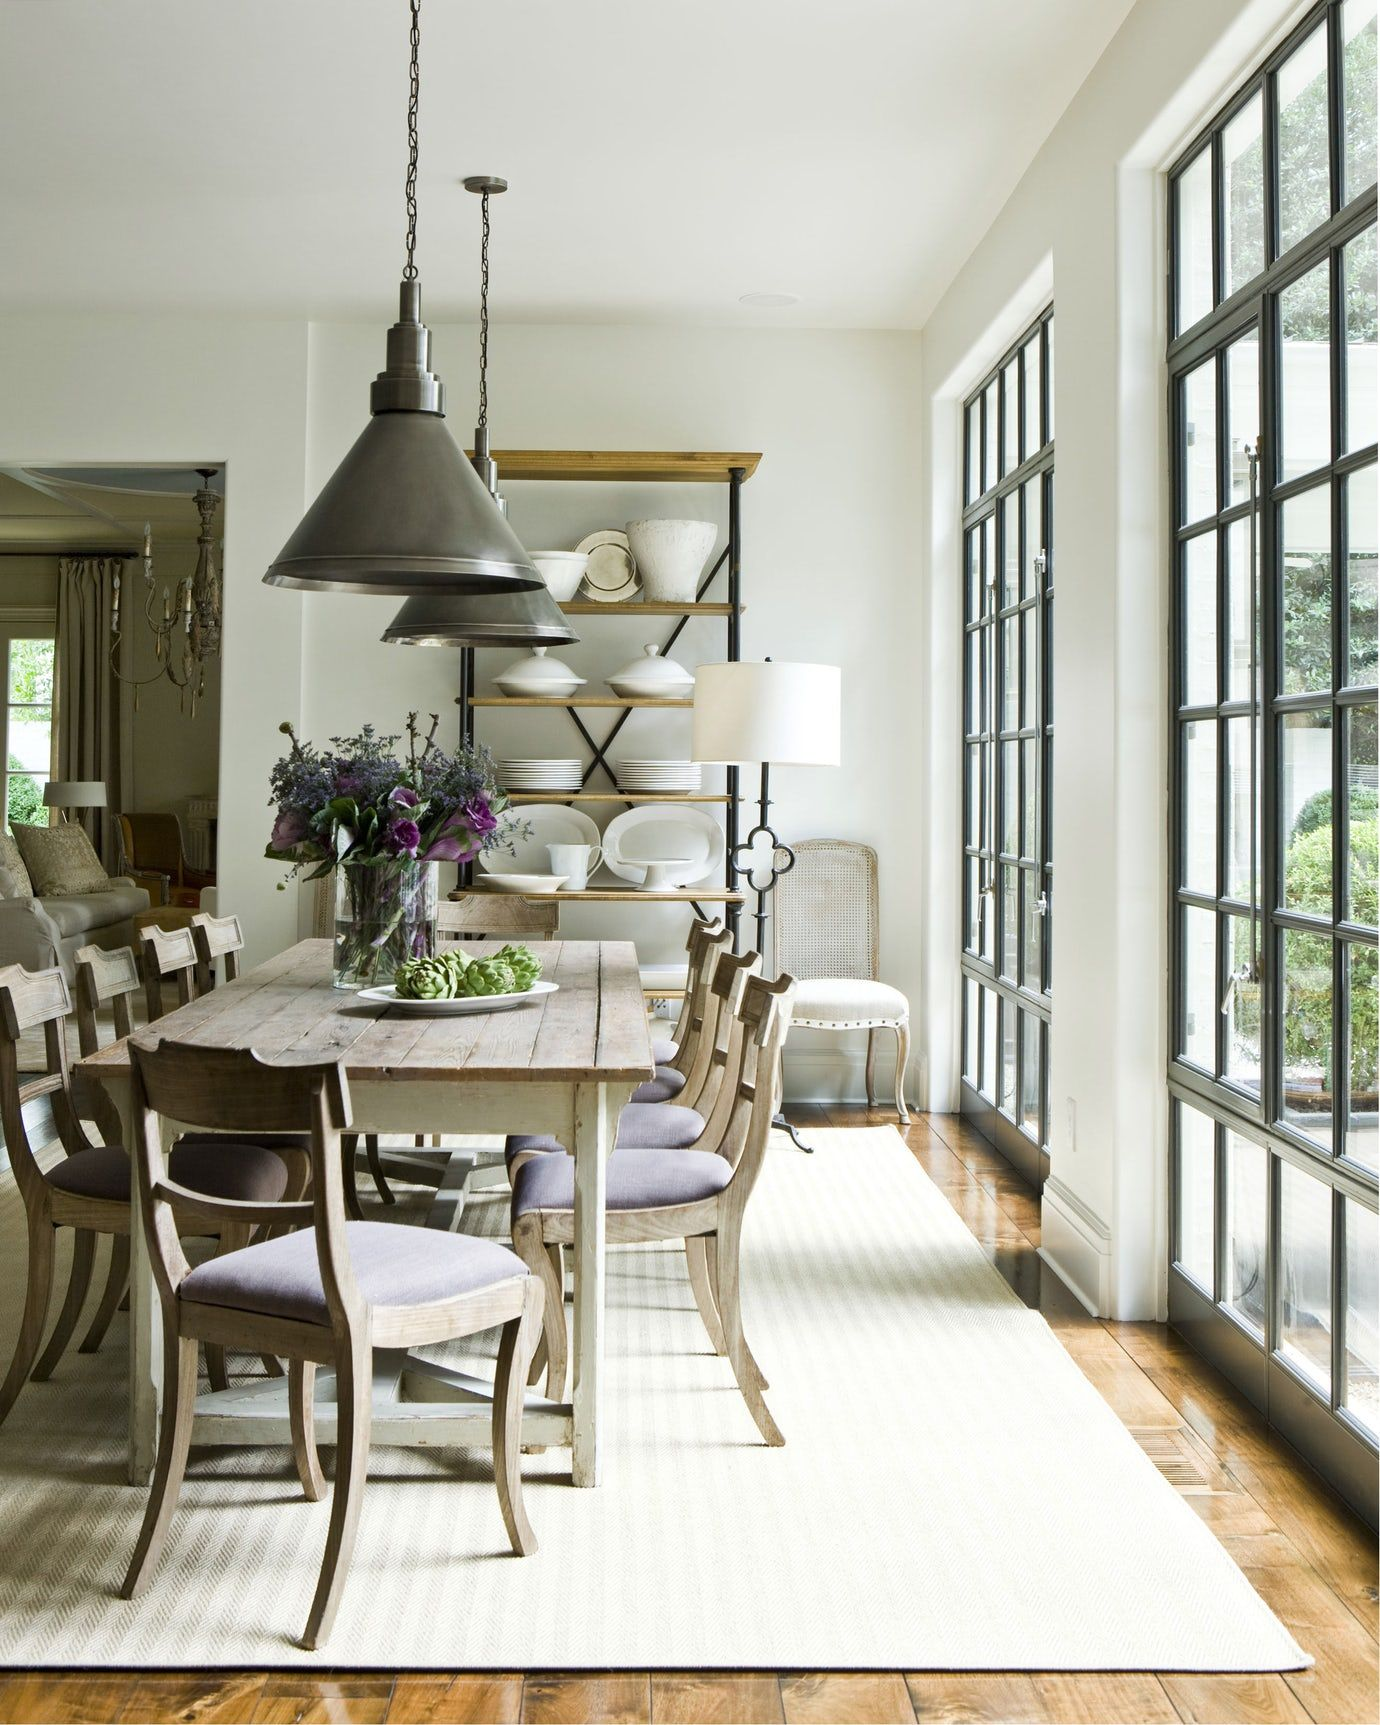 At Home Dining Room With Large Windows Dining Contemporary American Transitional By Suz Farmhouse Dining Rooms Decor Farmhouse Dining Room Farmhouse Dining